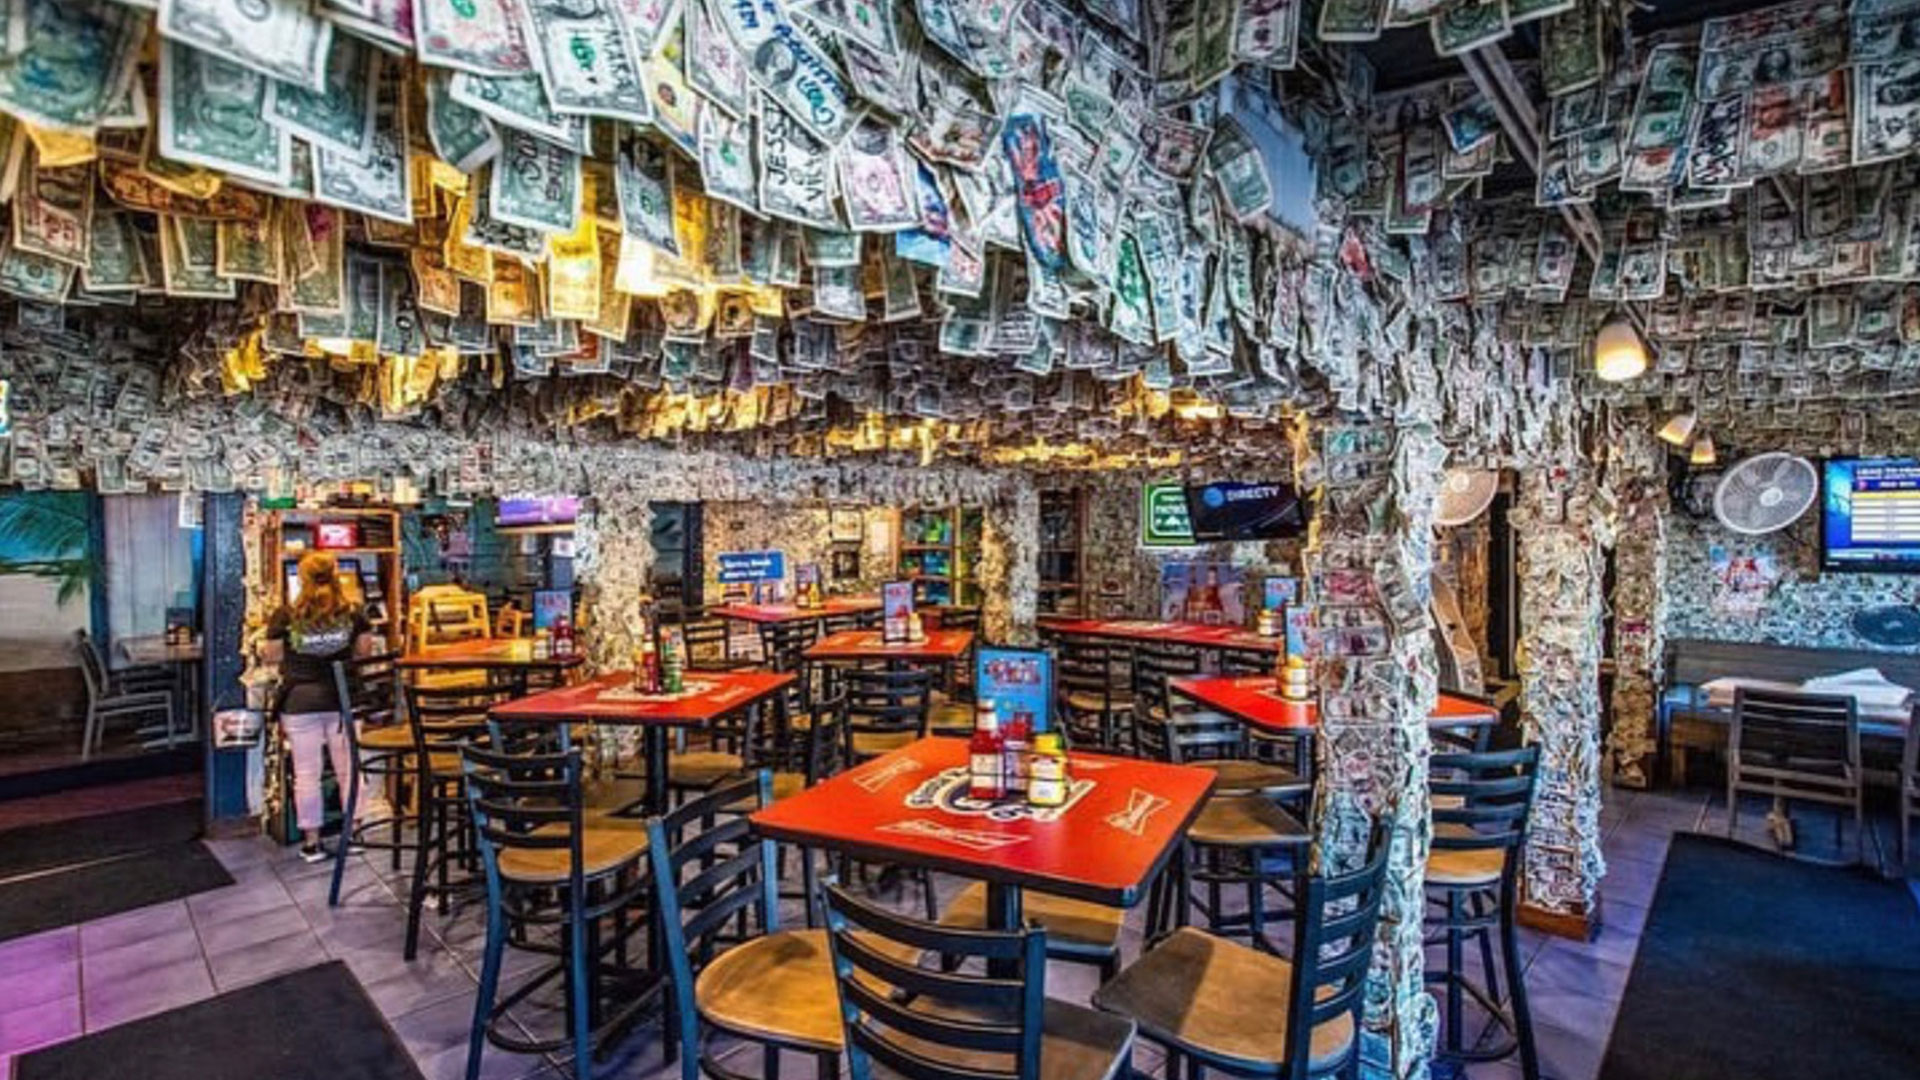 Florida Bar Removes Famous Dollar Bill Decor, Collects $15,000 for Hurricane Dorian Relief